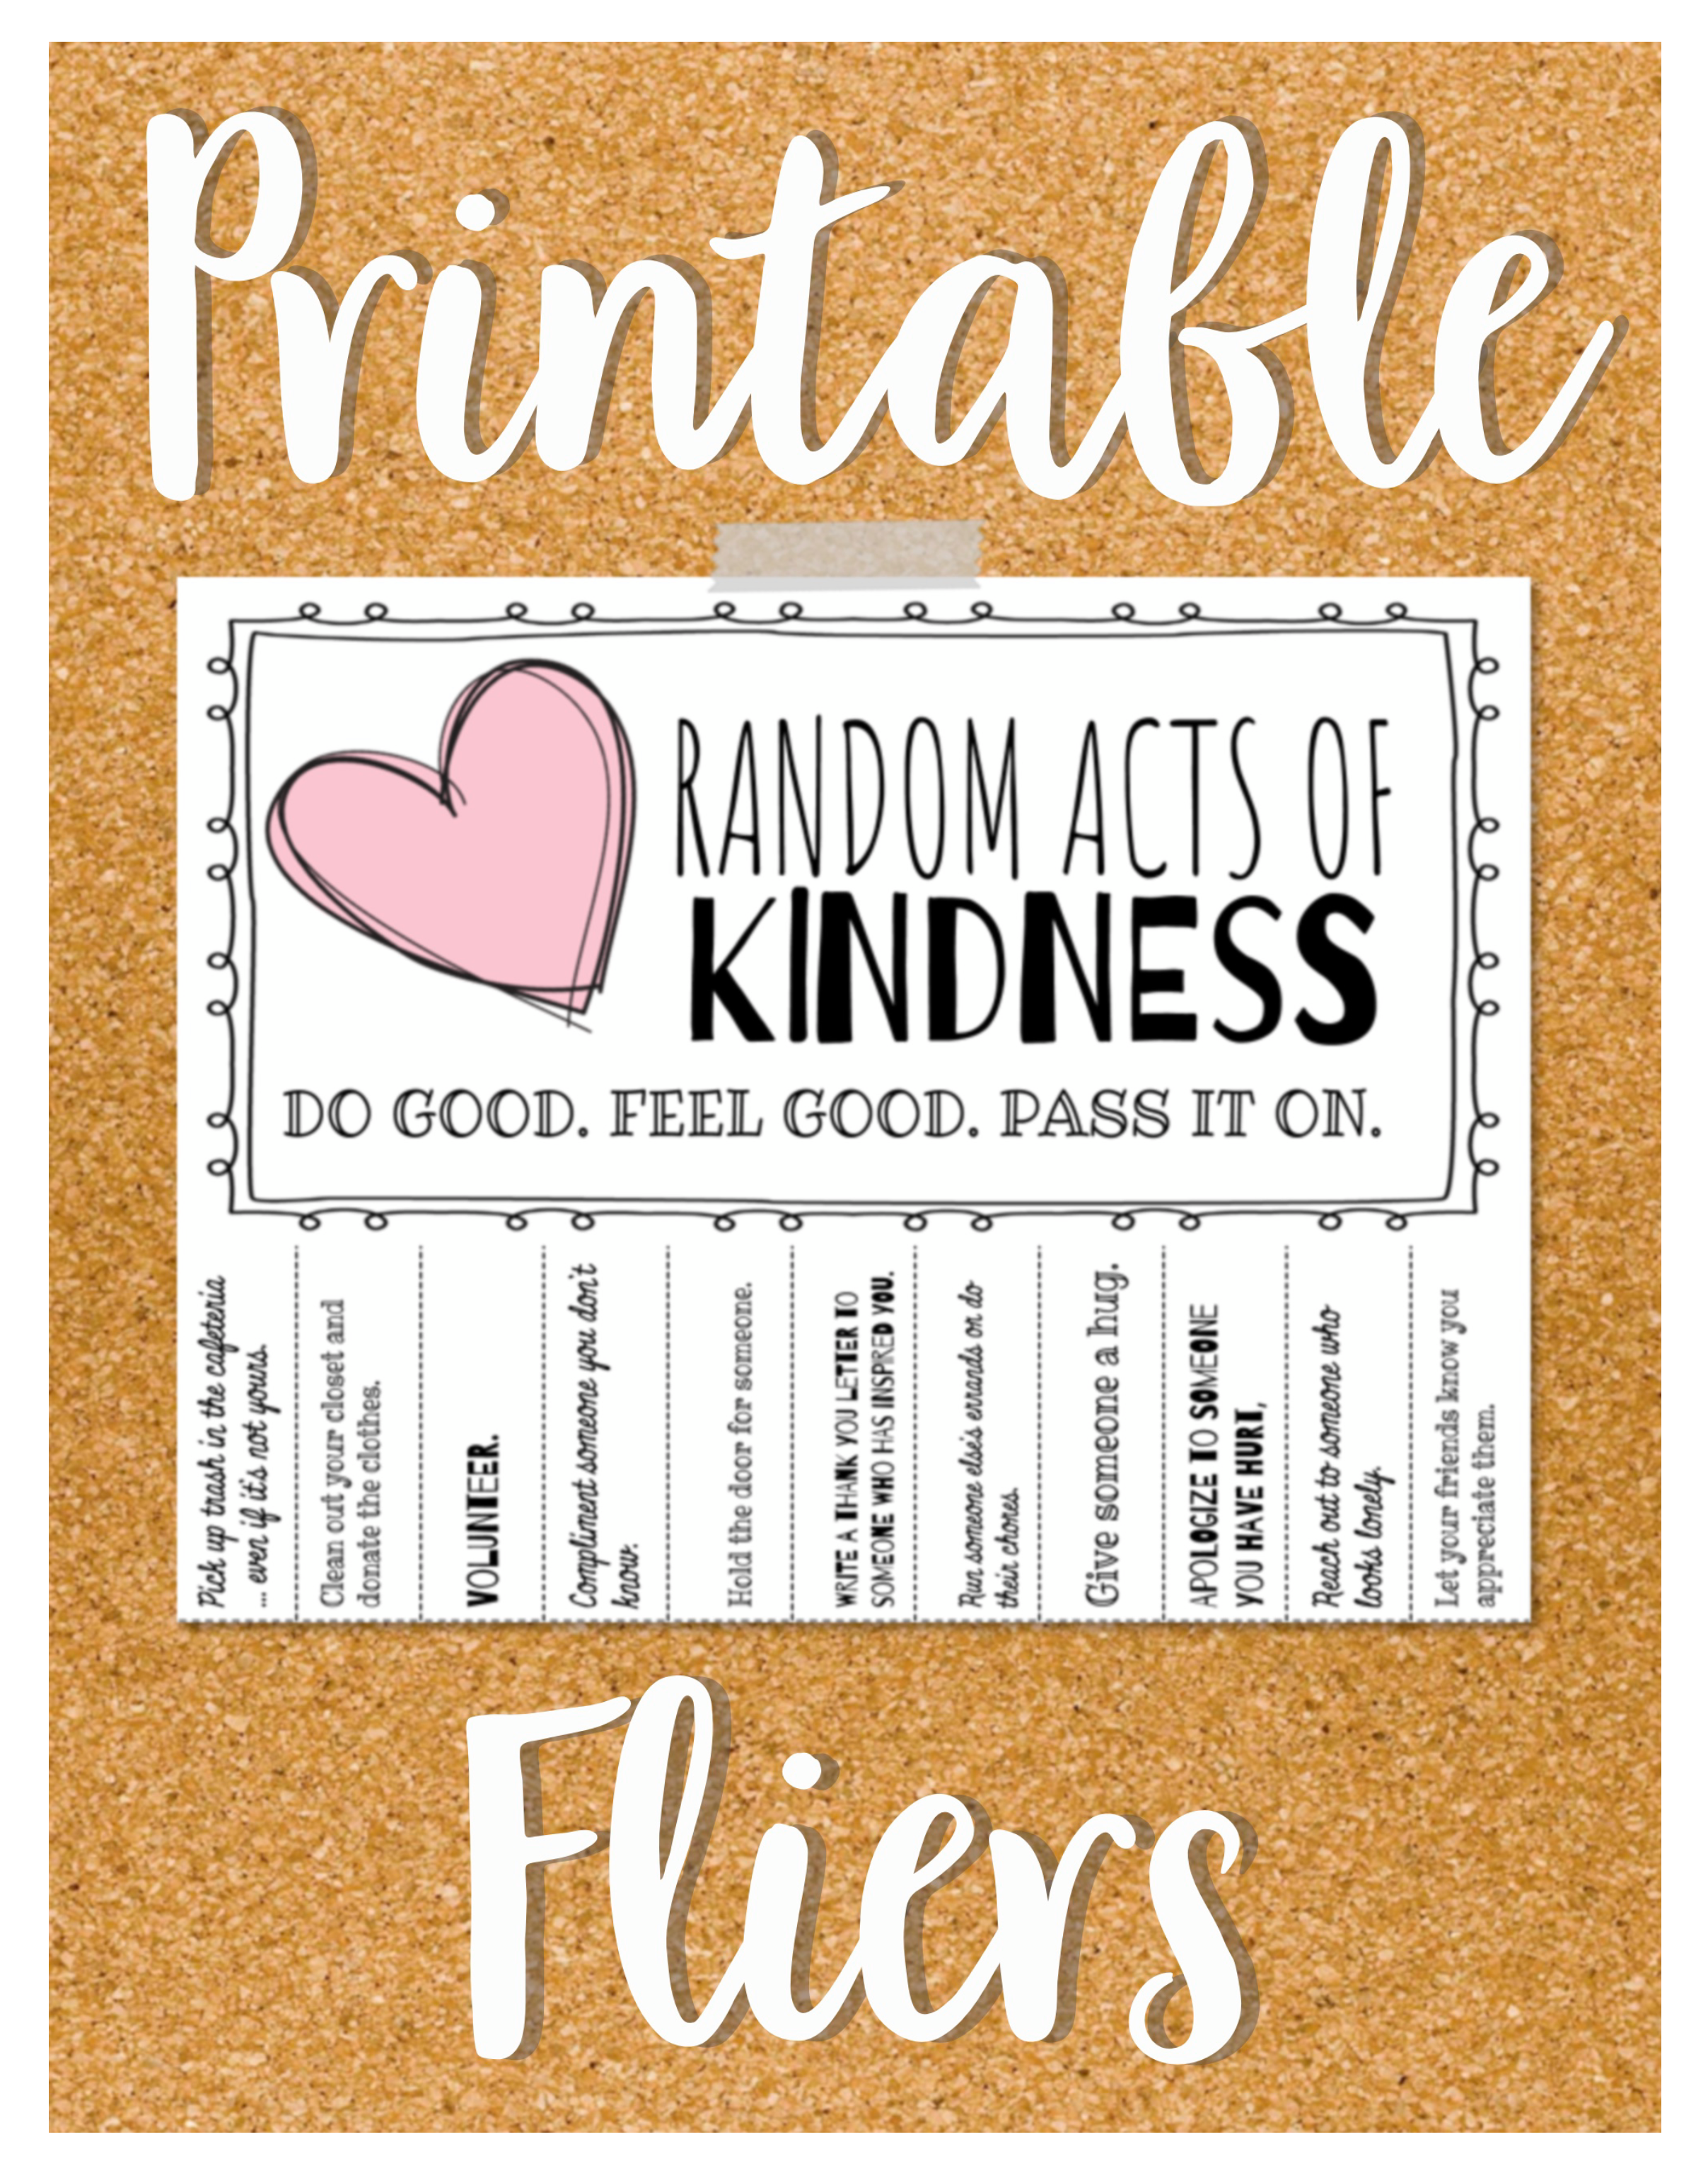 Random Acts Of Kindness Flier And Reflection Worksheet In